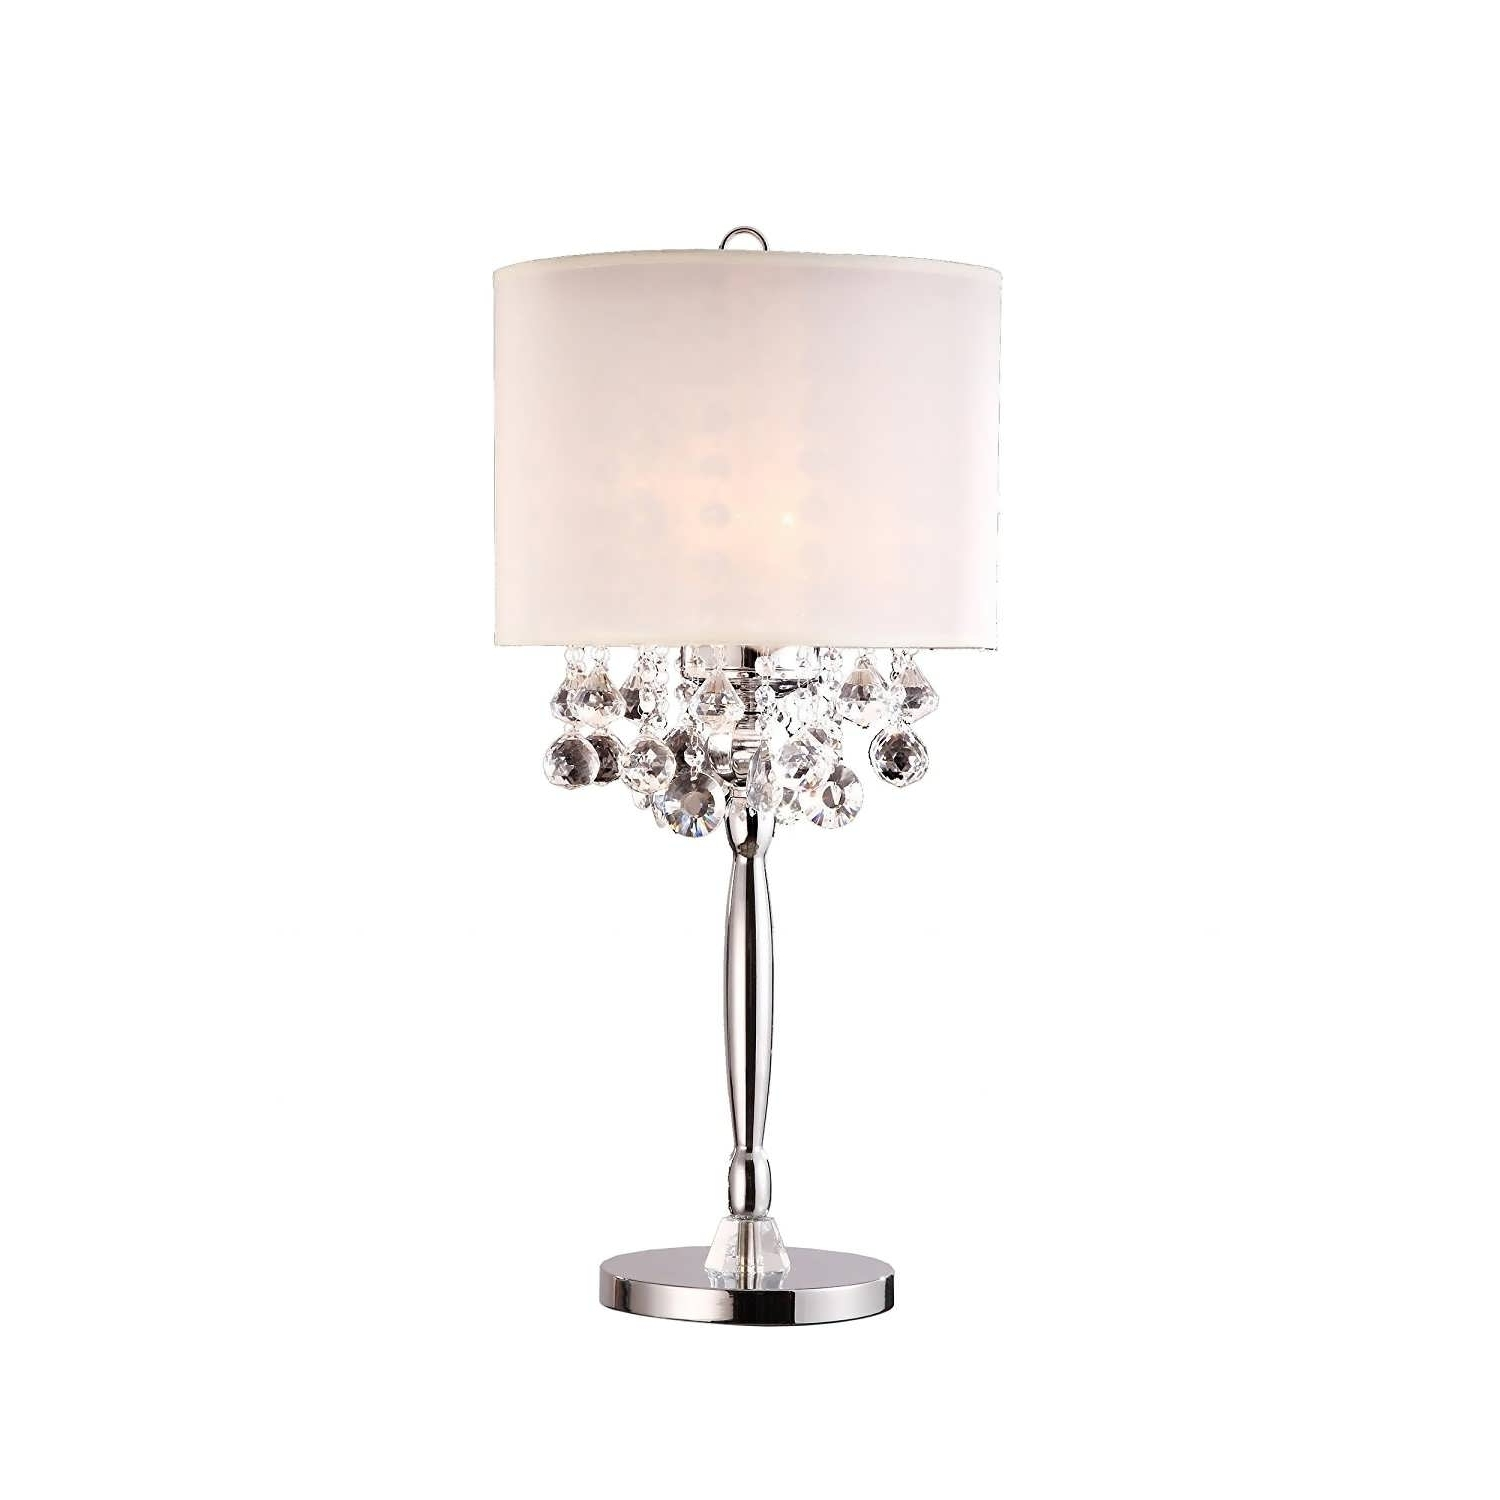 Famous Chandelier : Ceiling Light Fixture Small Table Lamps Crystal Throughout Small Crystal Chandelier Table Lamps (View 10 of 20)